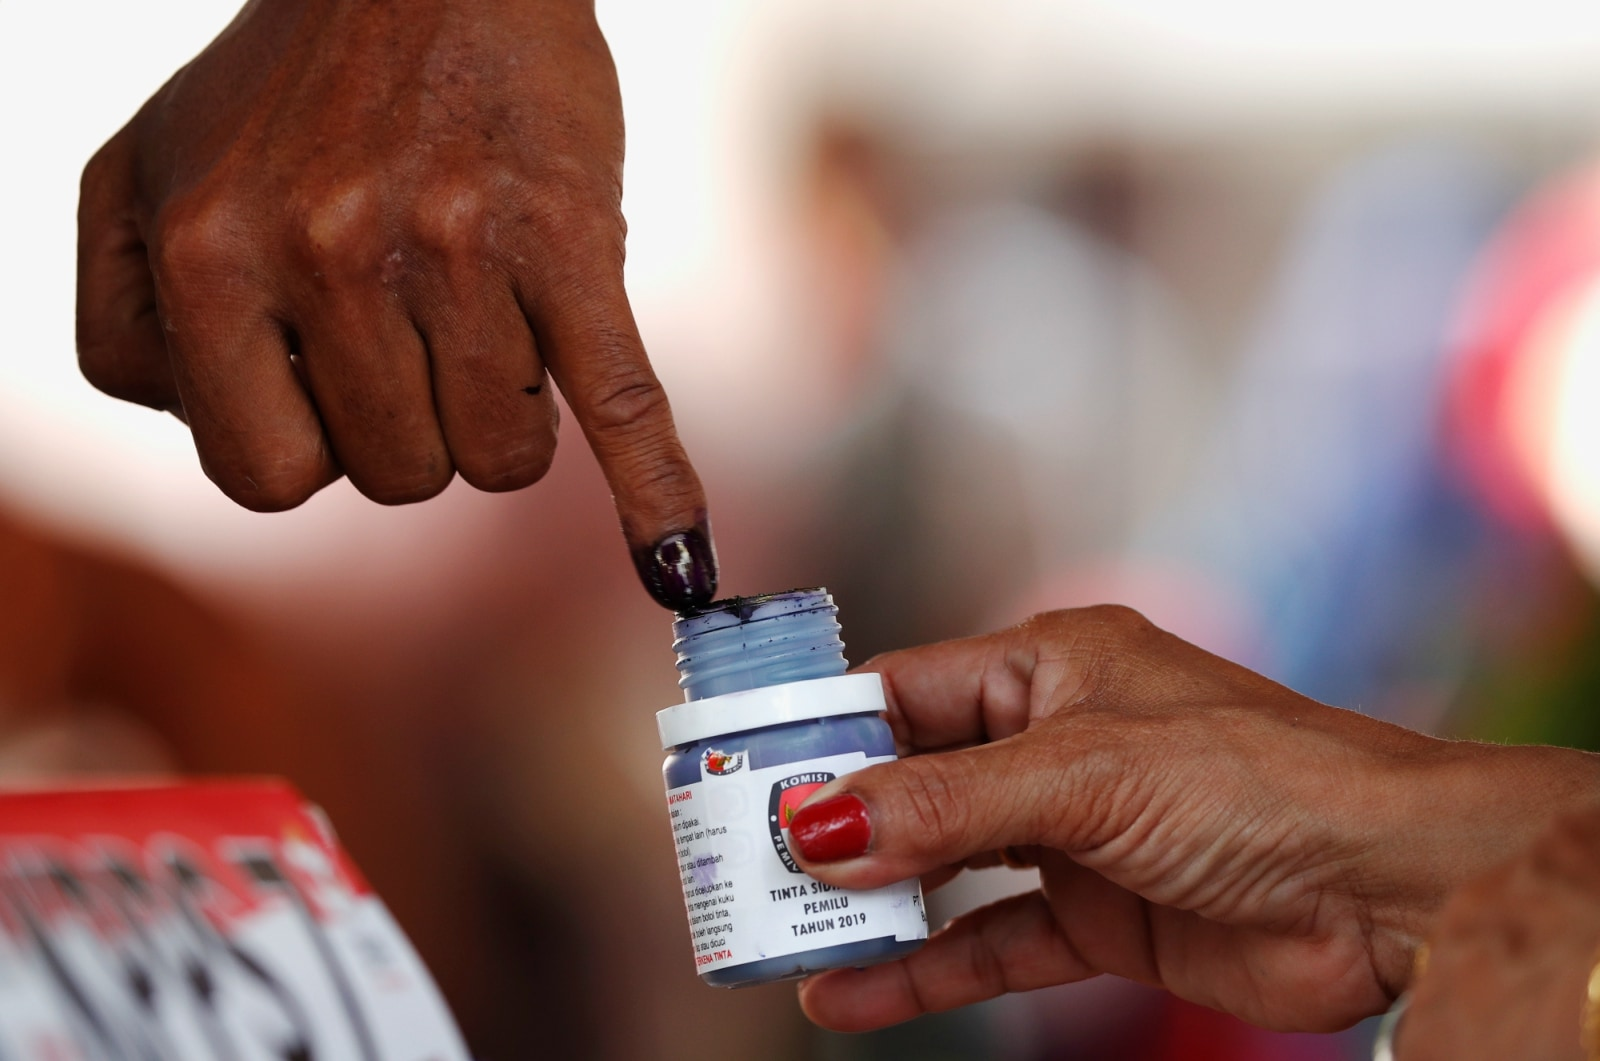 A voter's finger is dipped with ink after voting during elections in Jakarta, Indonesia April 17, 2019. REUTERS/Edgar Su